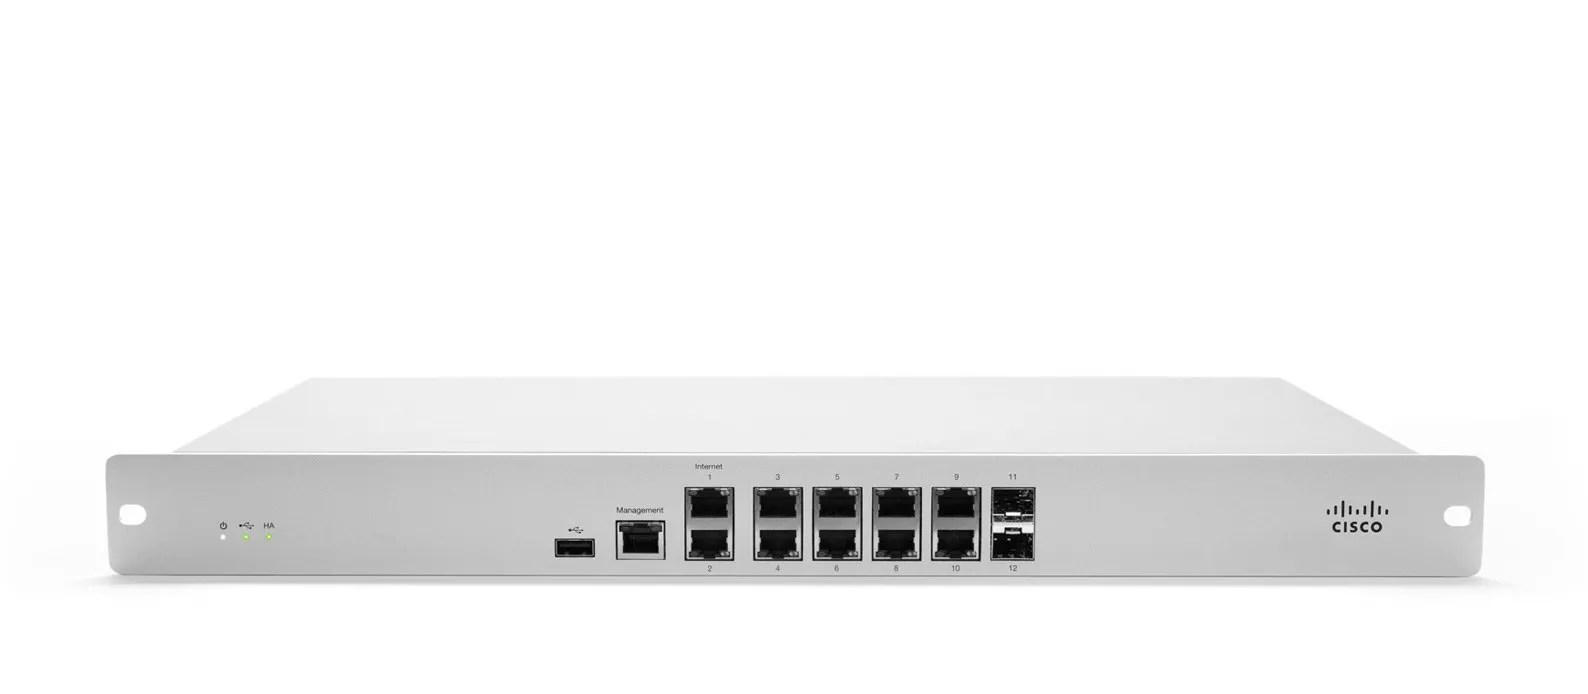 Cisco Meraki MX84 security appliance